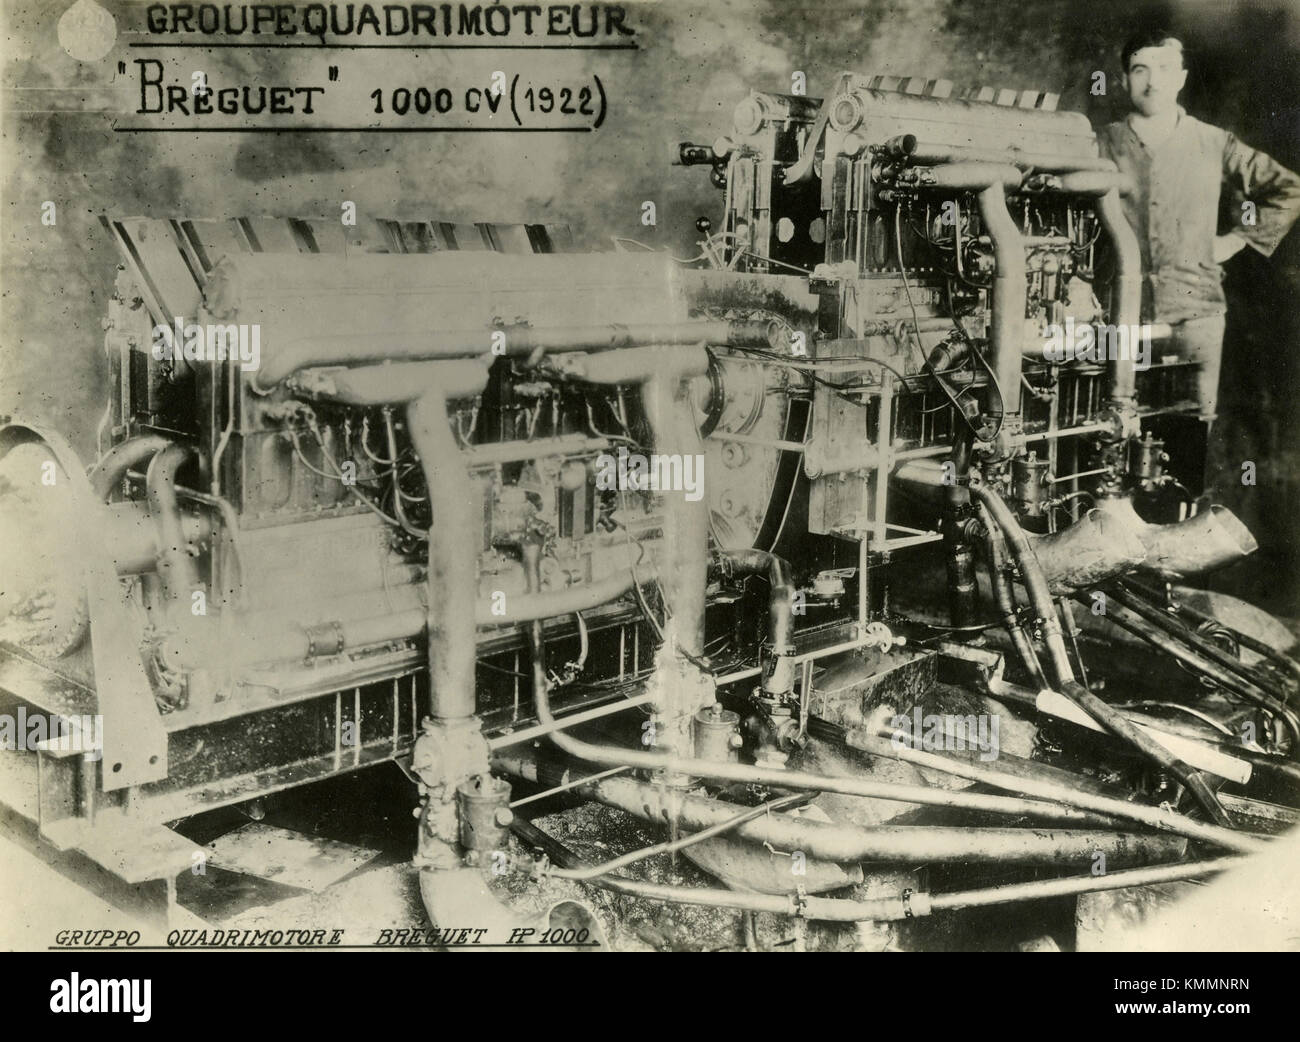 Breguet Bugatti 16-cylinder quadimoteur 32A aircraft engine, France 1920s - Stock Image